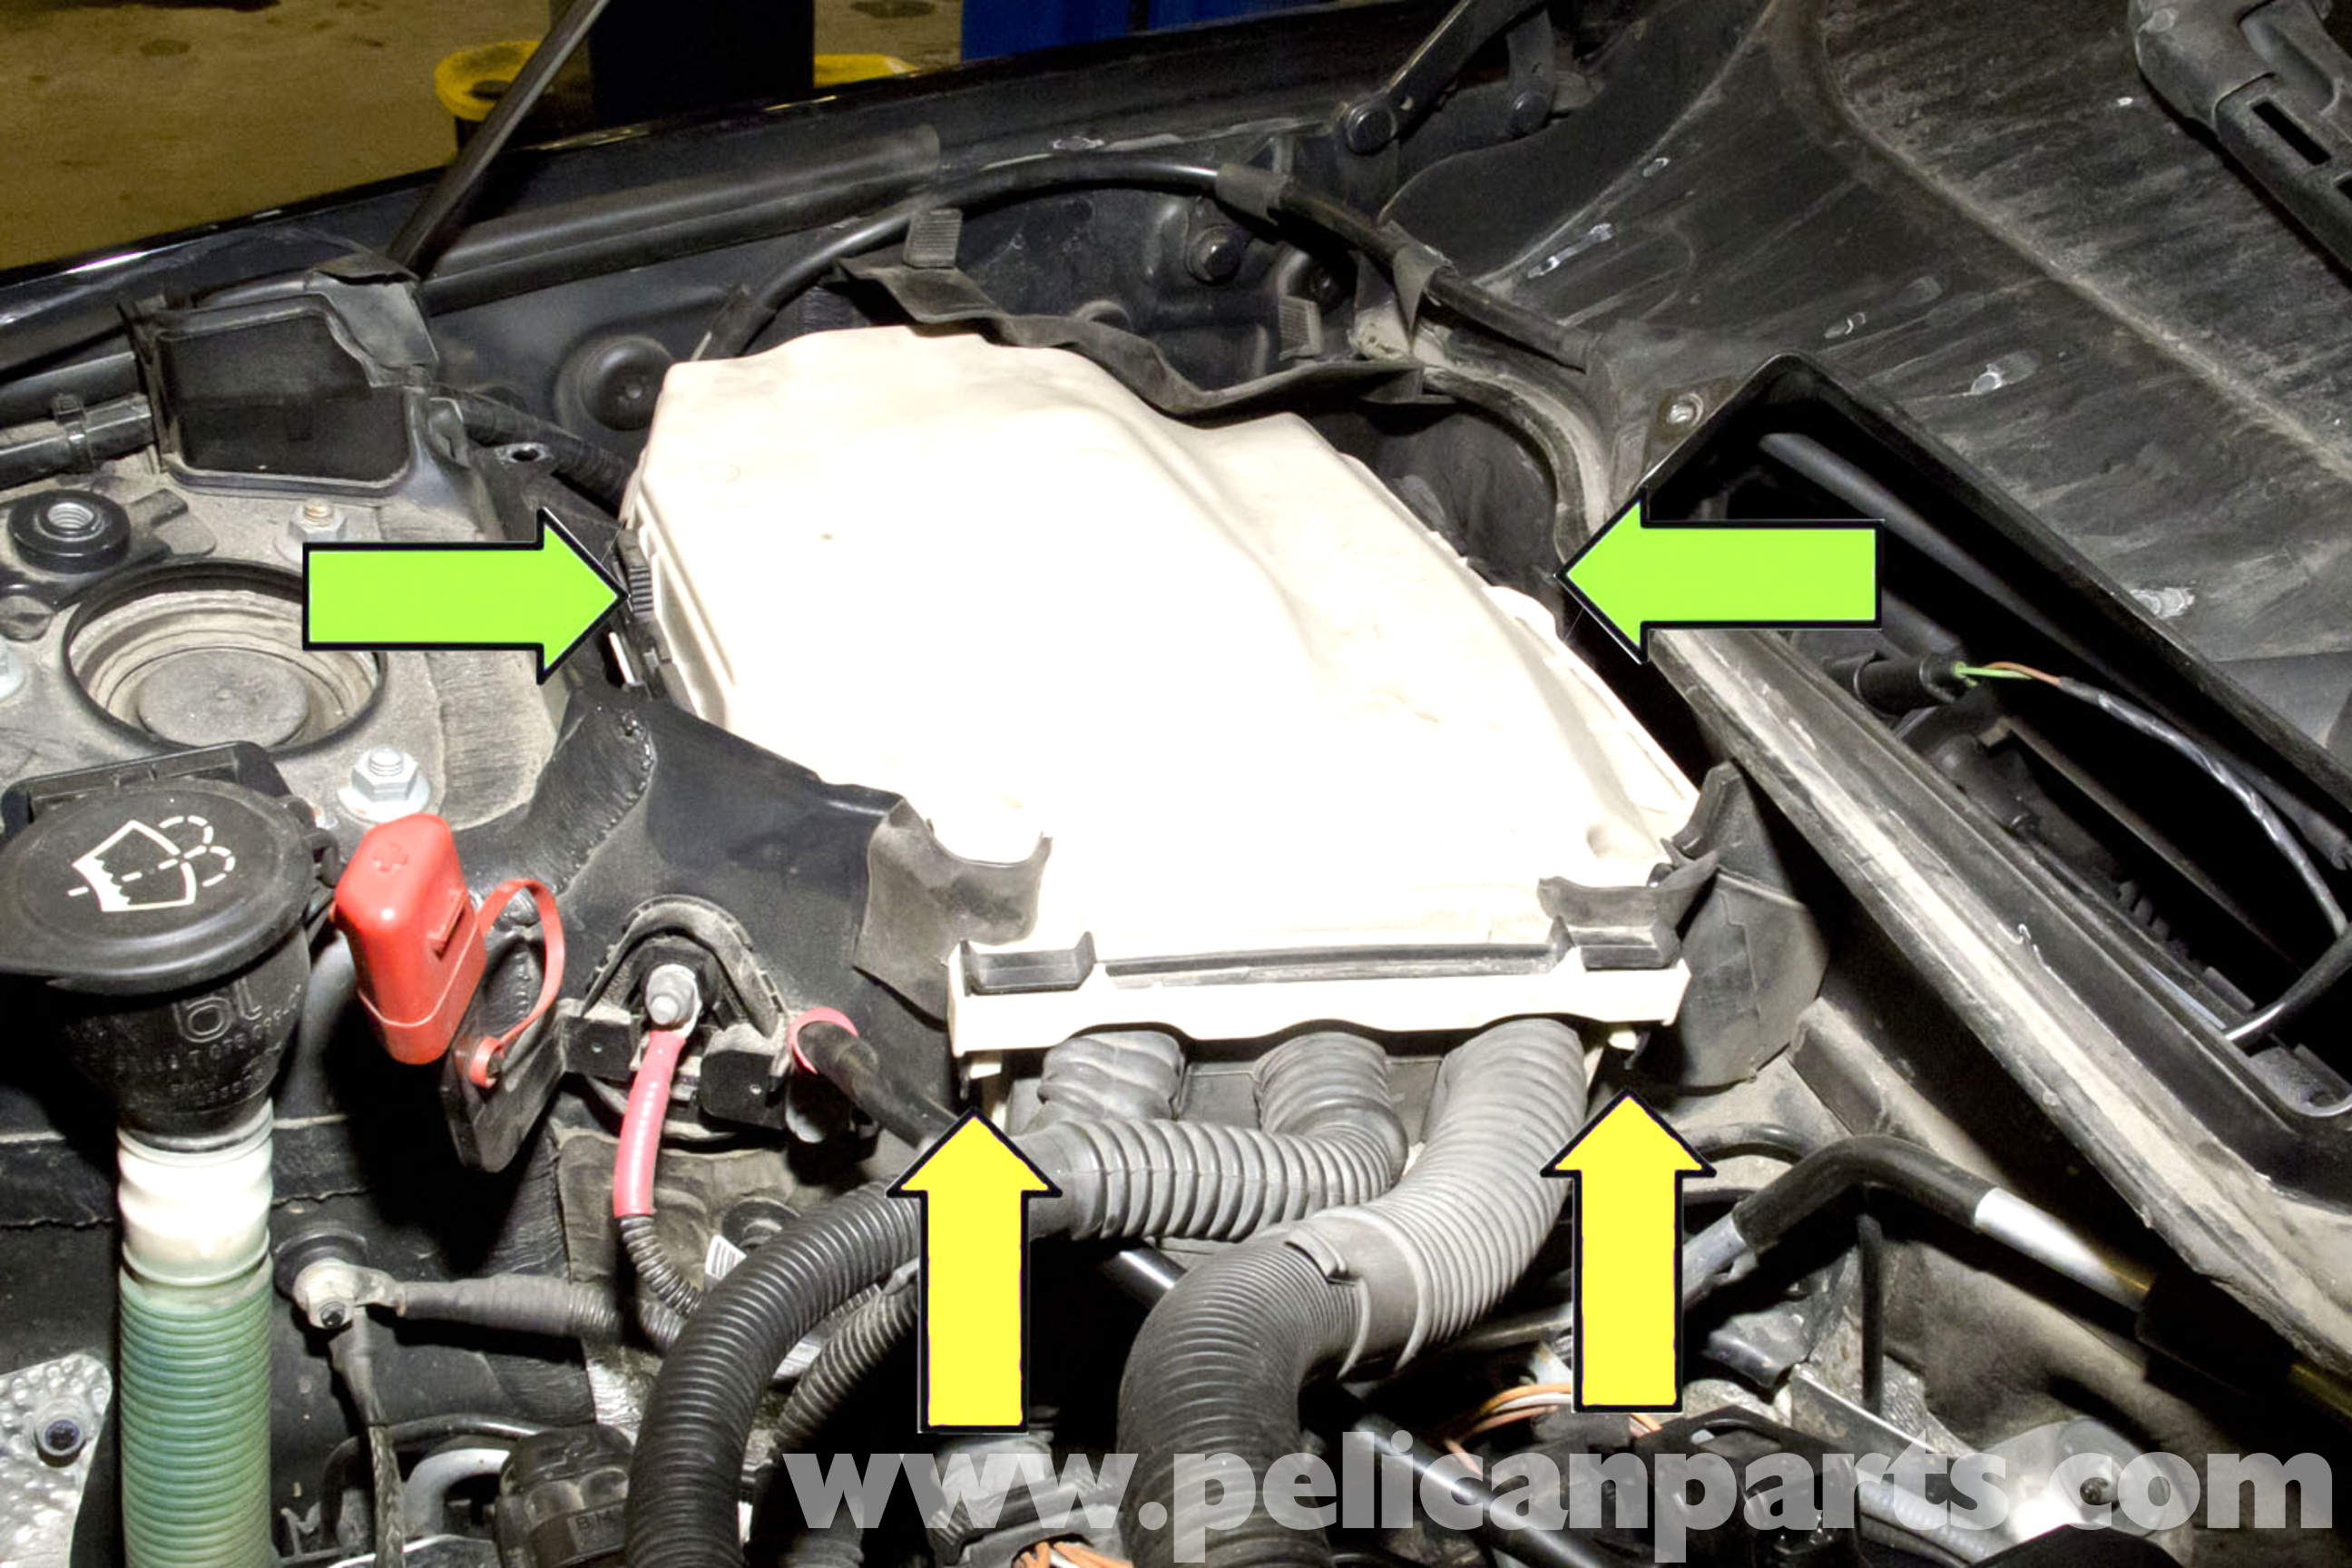 BMW E90 Valve Cover Seal Replacement | E91, E92, E93 | Pelican Parts ...